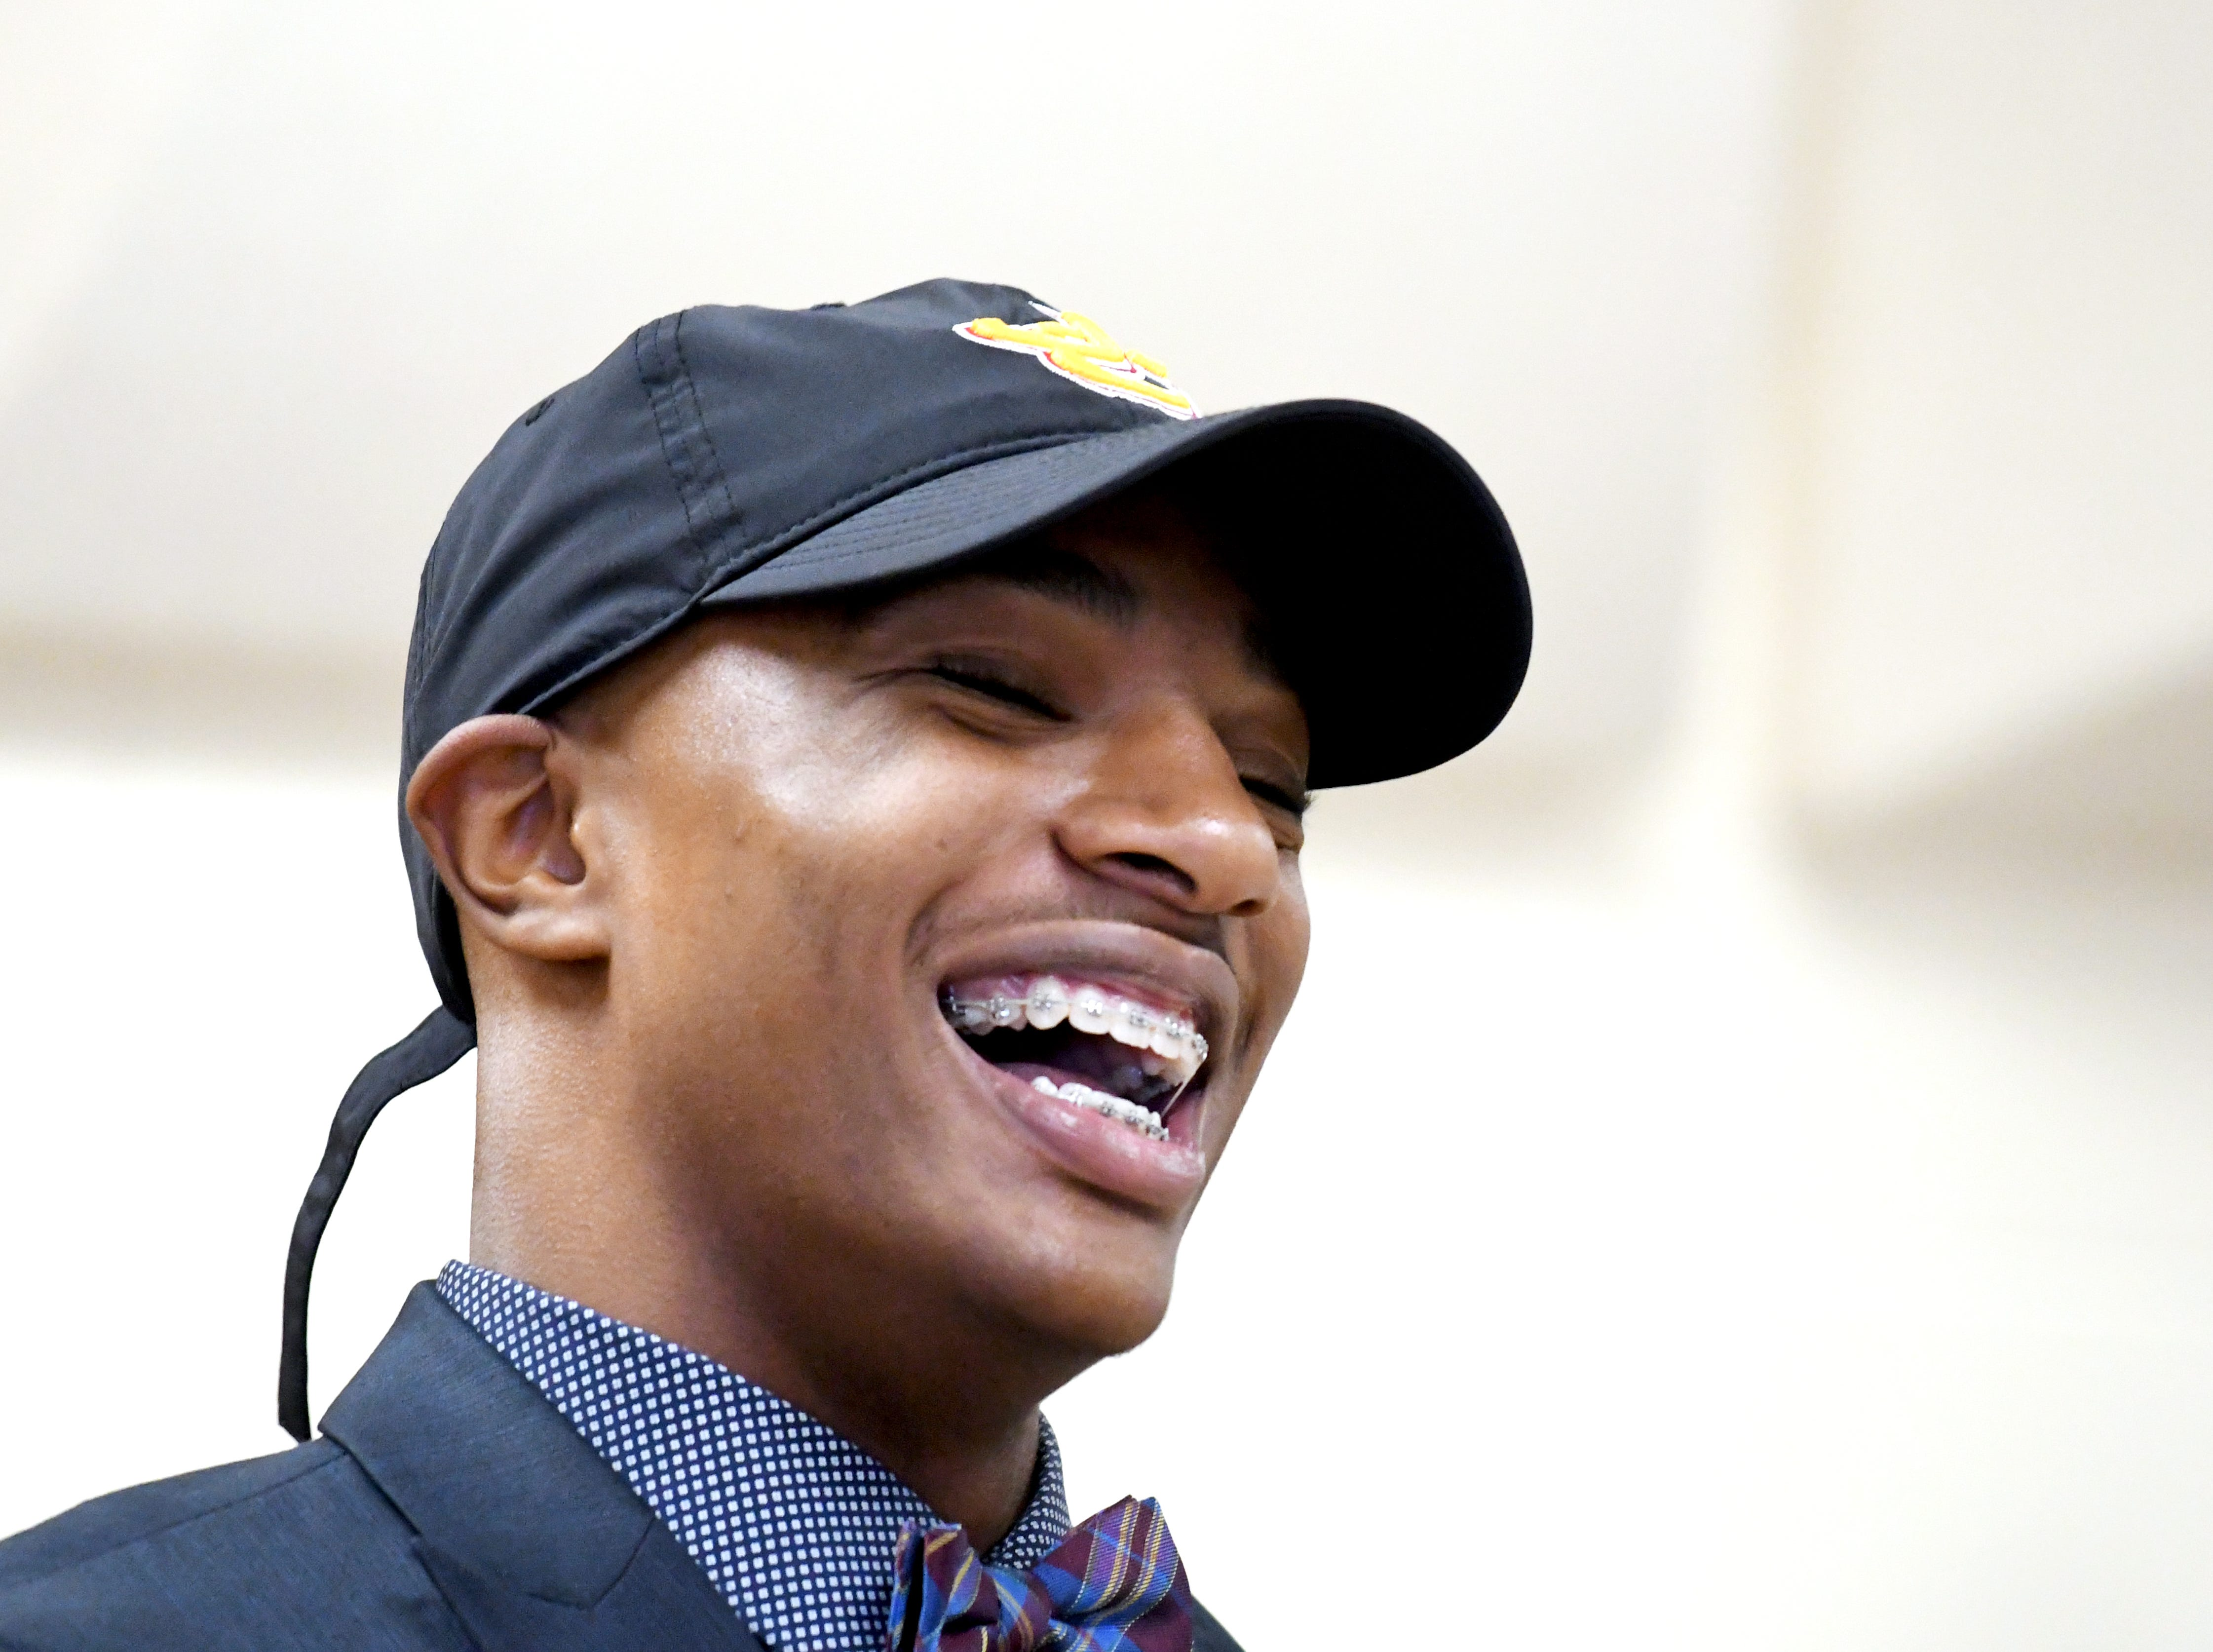 Oak Grove athlete Jeric Franklin commits to Jones County Junior College to play football during National Signing Day in Hattiesburg on Wednesday, February 6, 2019.